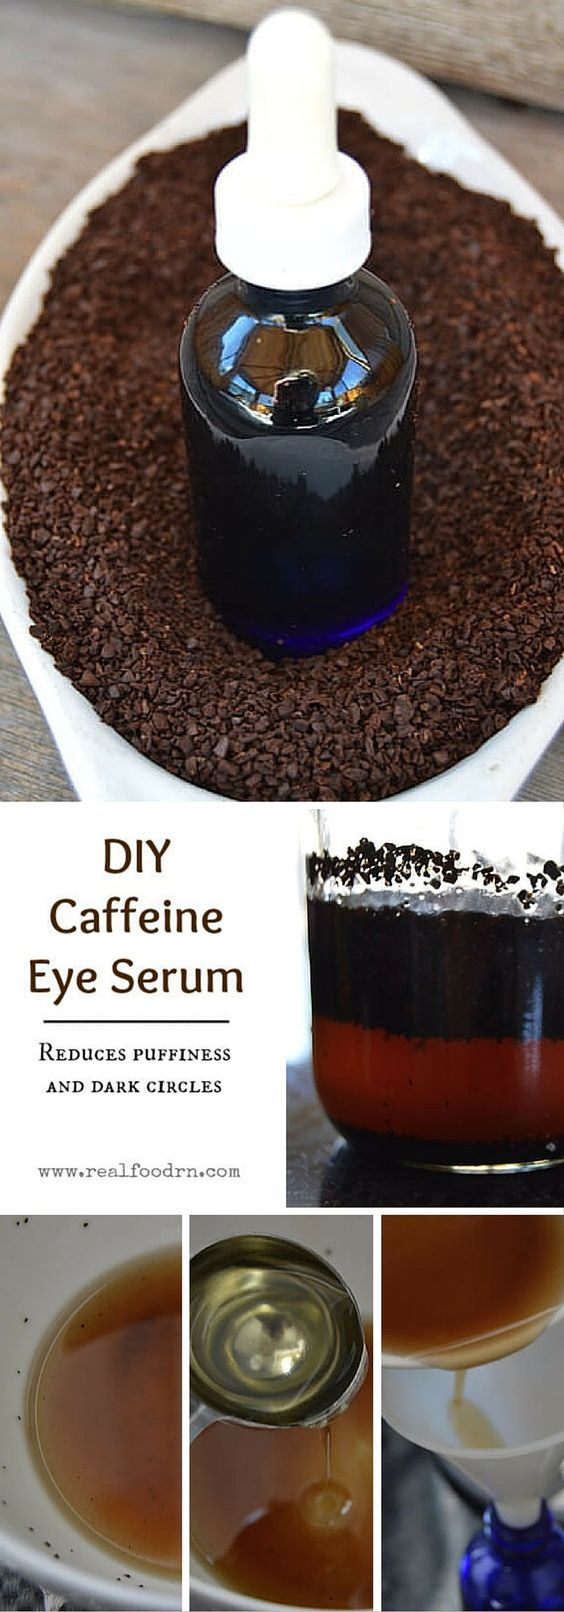 DIY Caffeine Eye Serum. So easy to make a non-toxic serum that helps reduce puffiness and dark circles. You will never pay the high price tag for the store bought stuff again! realfoodrn.com #caffeineeyeserum #serum